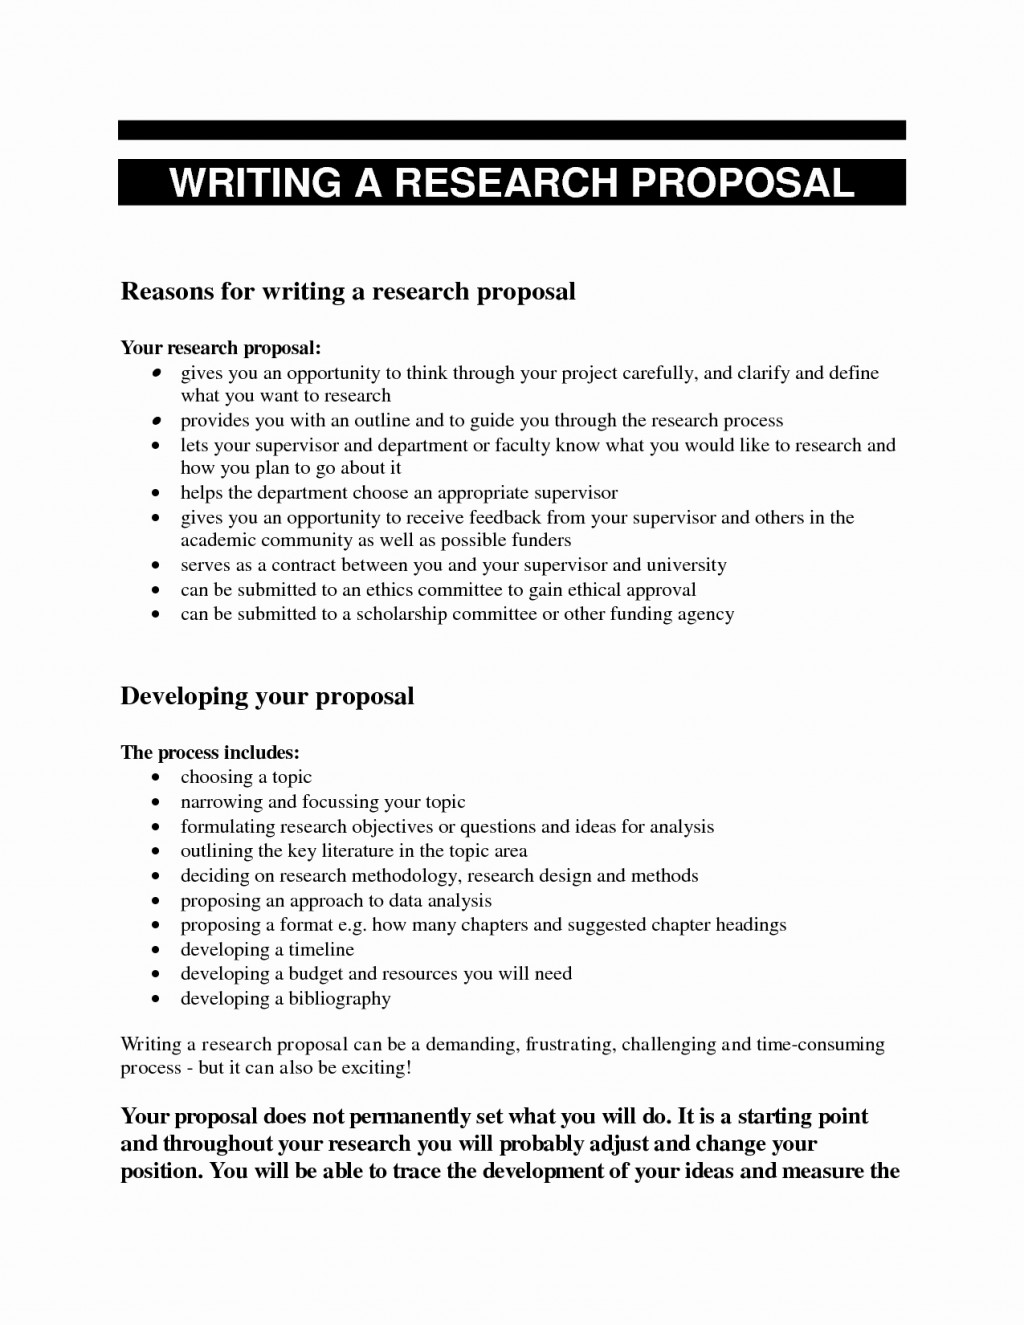 016 How To Write Research Paper Proposal Sample Essay Template For Topics College Students Amazing A In Apa Format Large